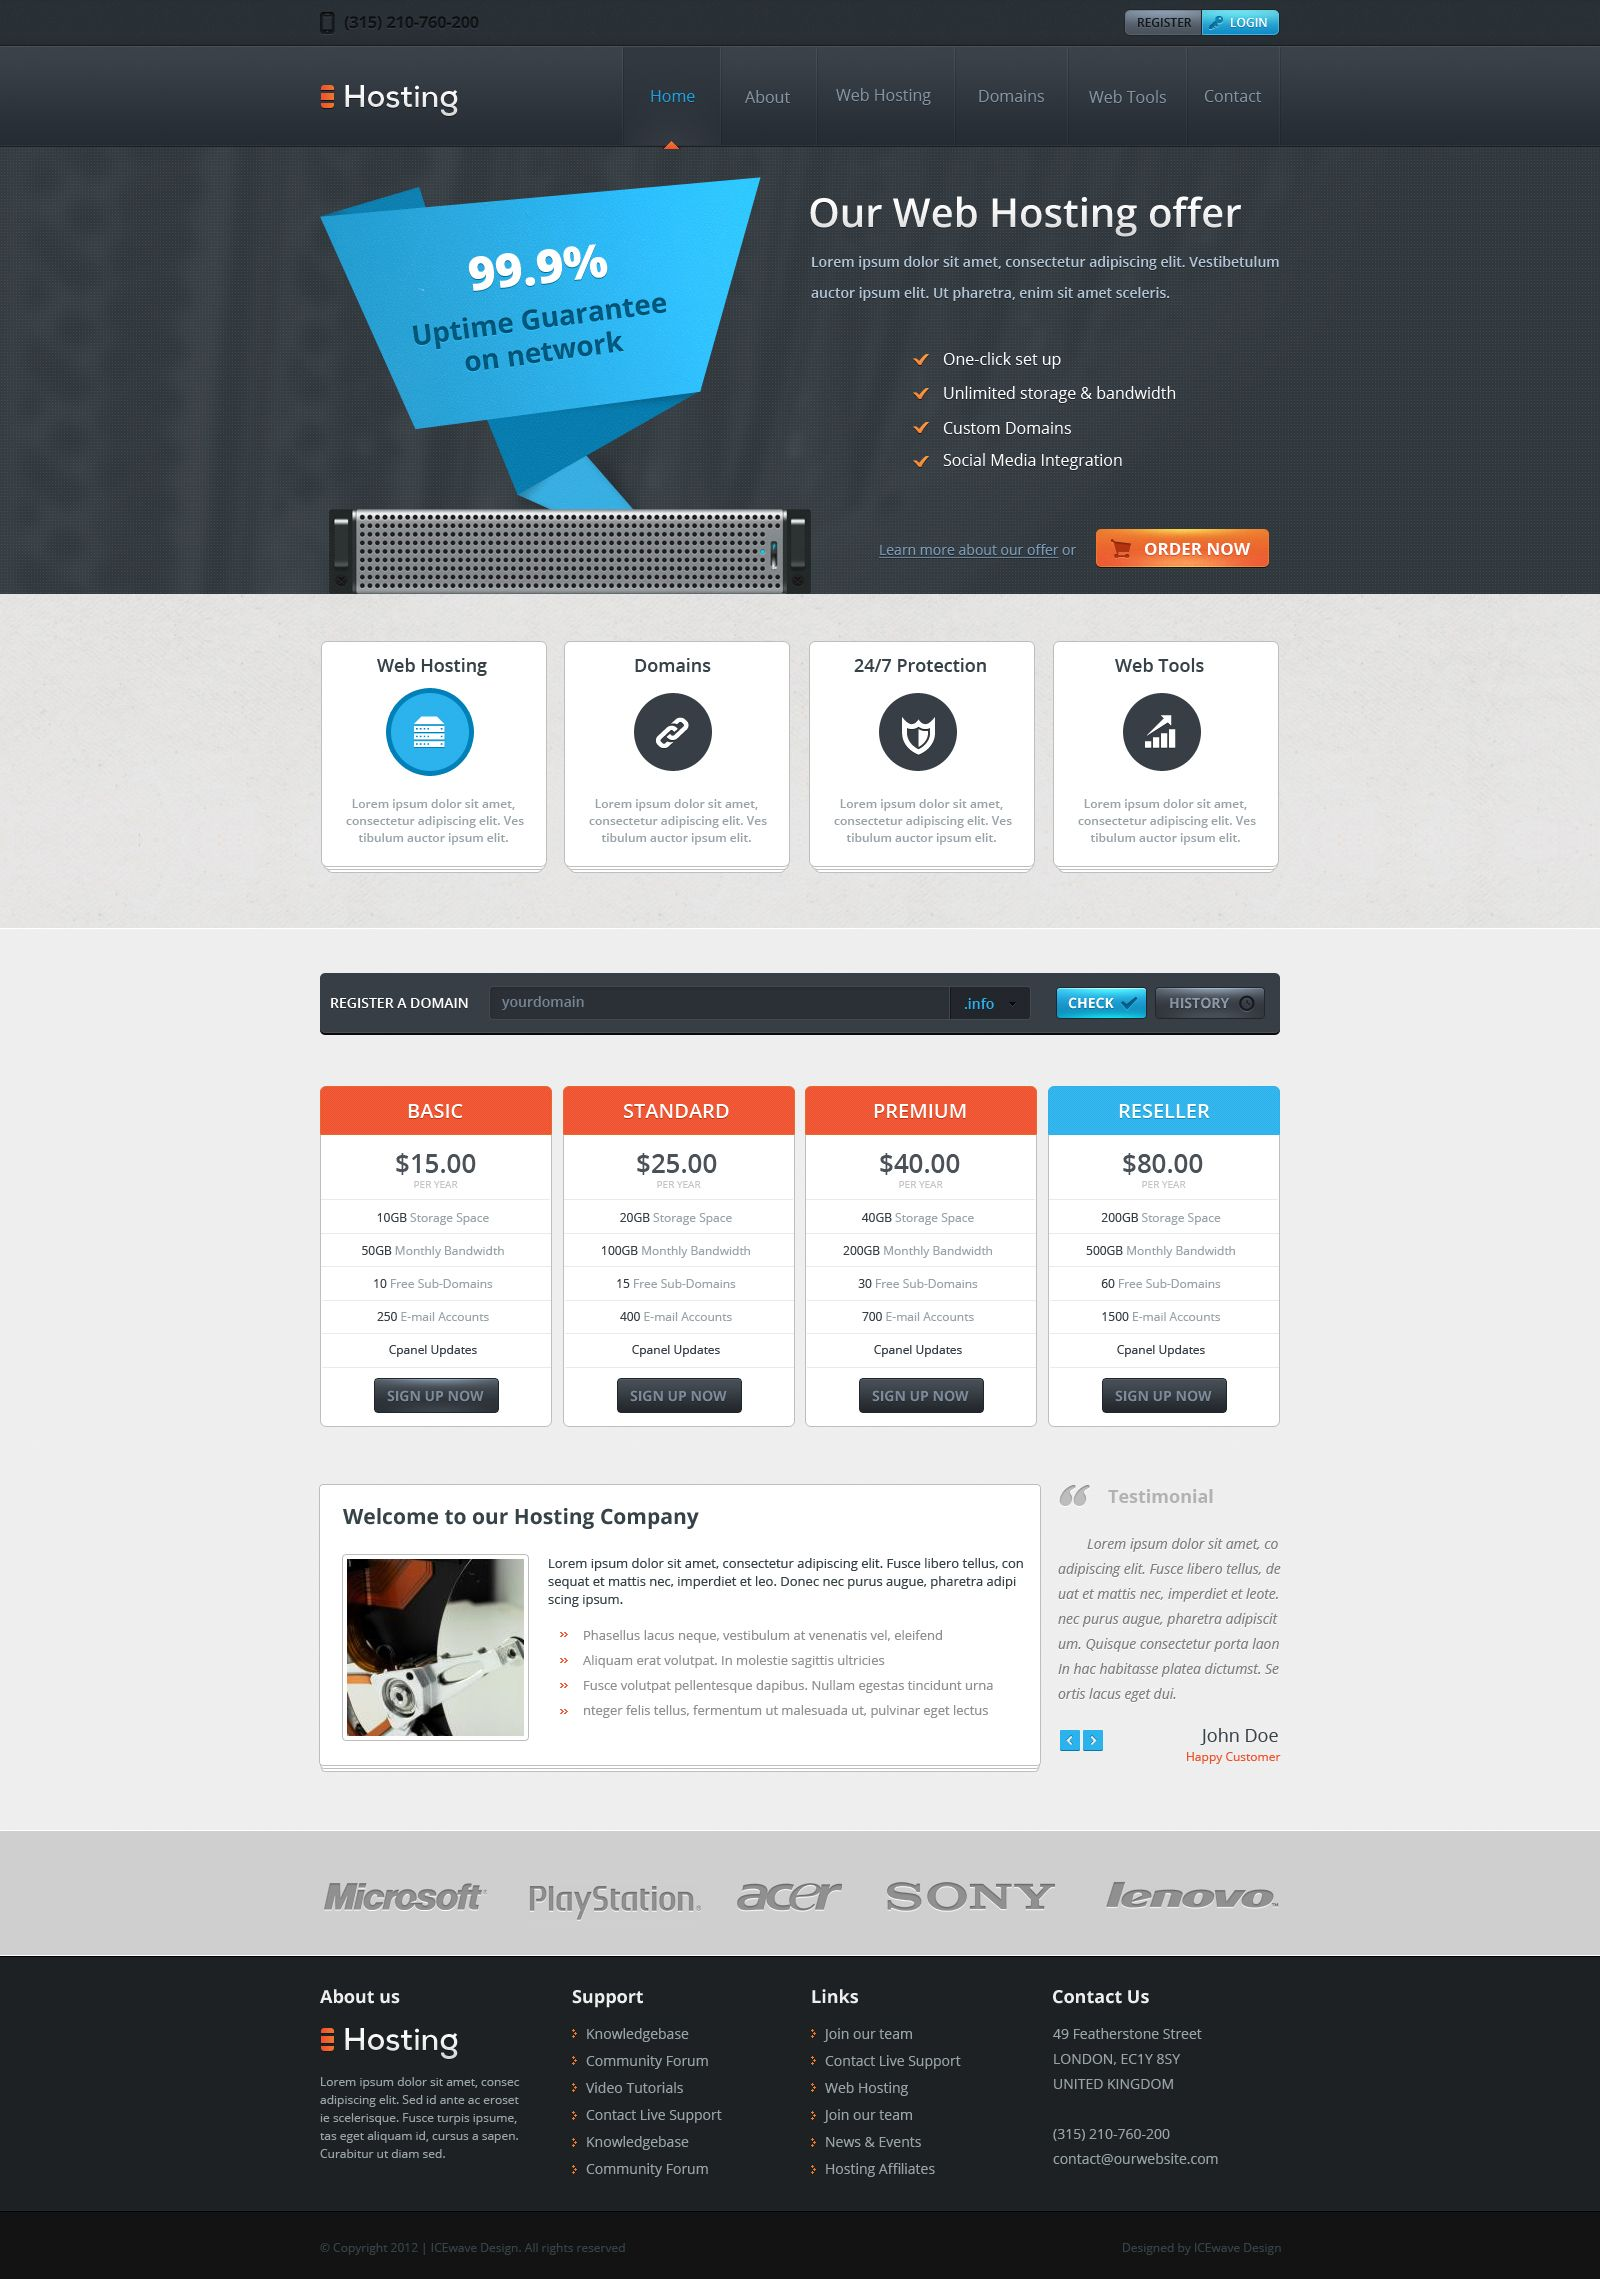 Web Hosting Template by ~ICEwaveGfx on deviantART #webdesign | Web ...